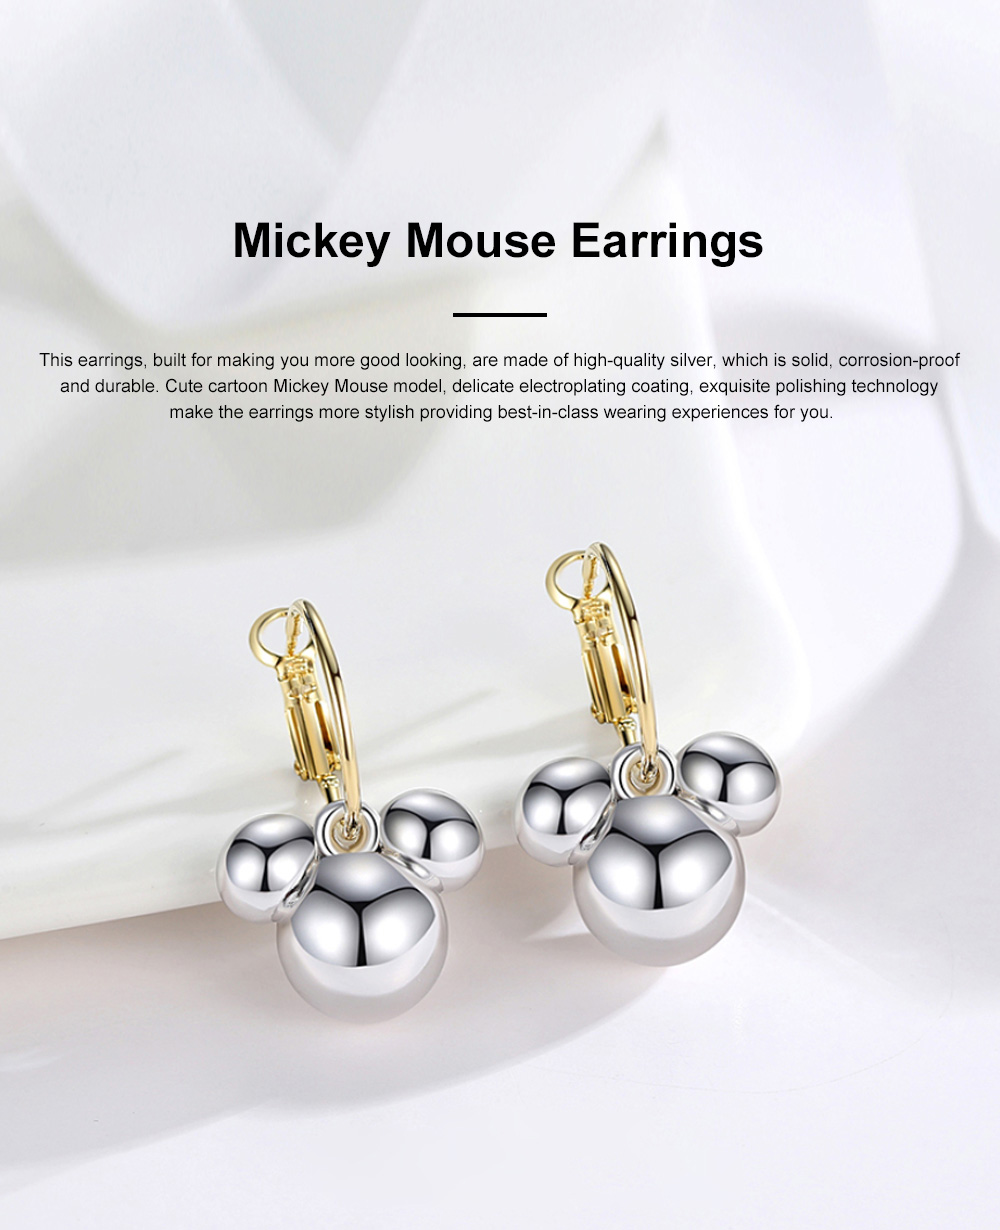 CAROMAY Minimalist Stylish Fashionable Cartoon Cute Mouse Model Silver Earrings Eardrops with Electroplating Coating 0